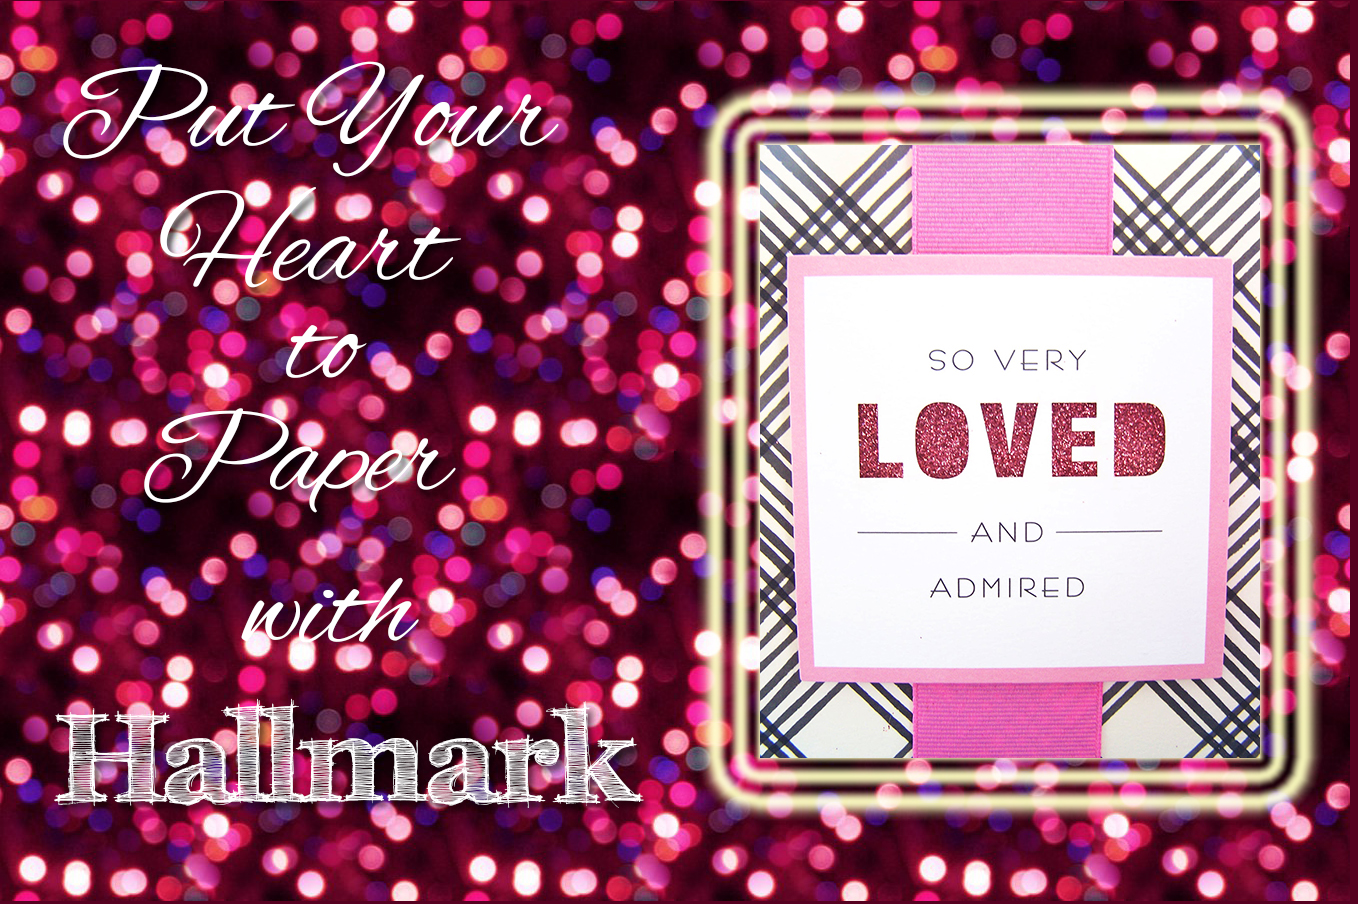 Beautiful Cards from Hallmark: A Mother's Day Giveaway! Ends 05-05 #LoveHallmark